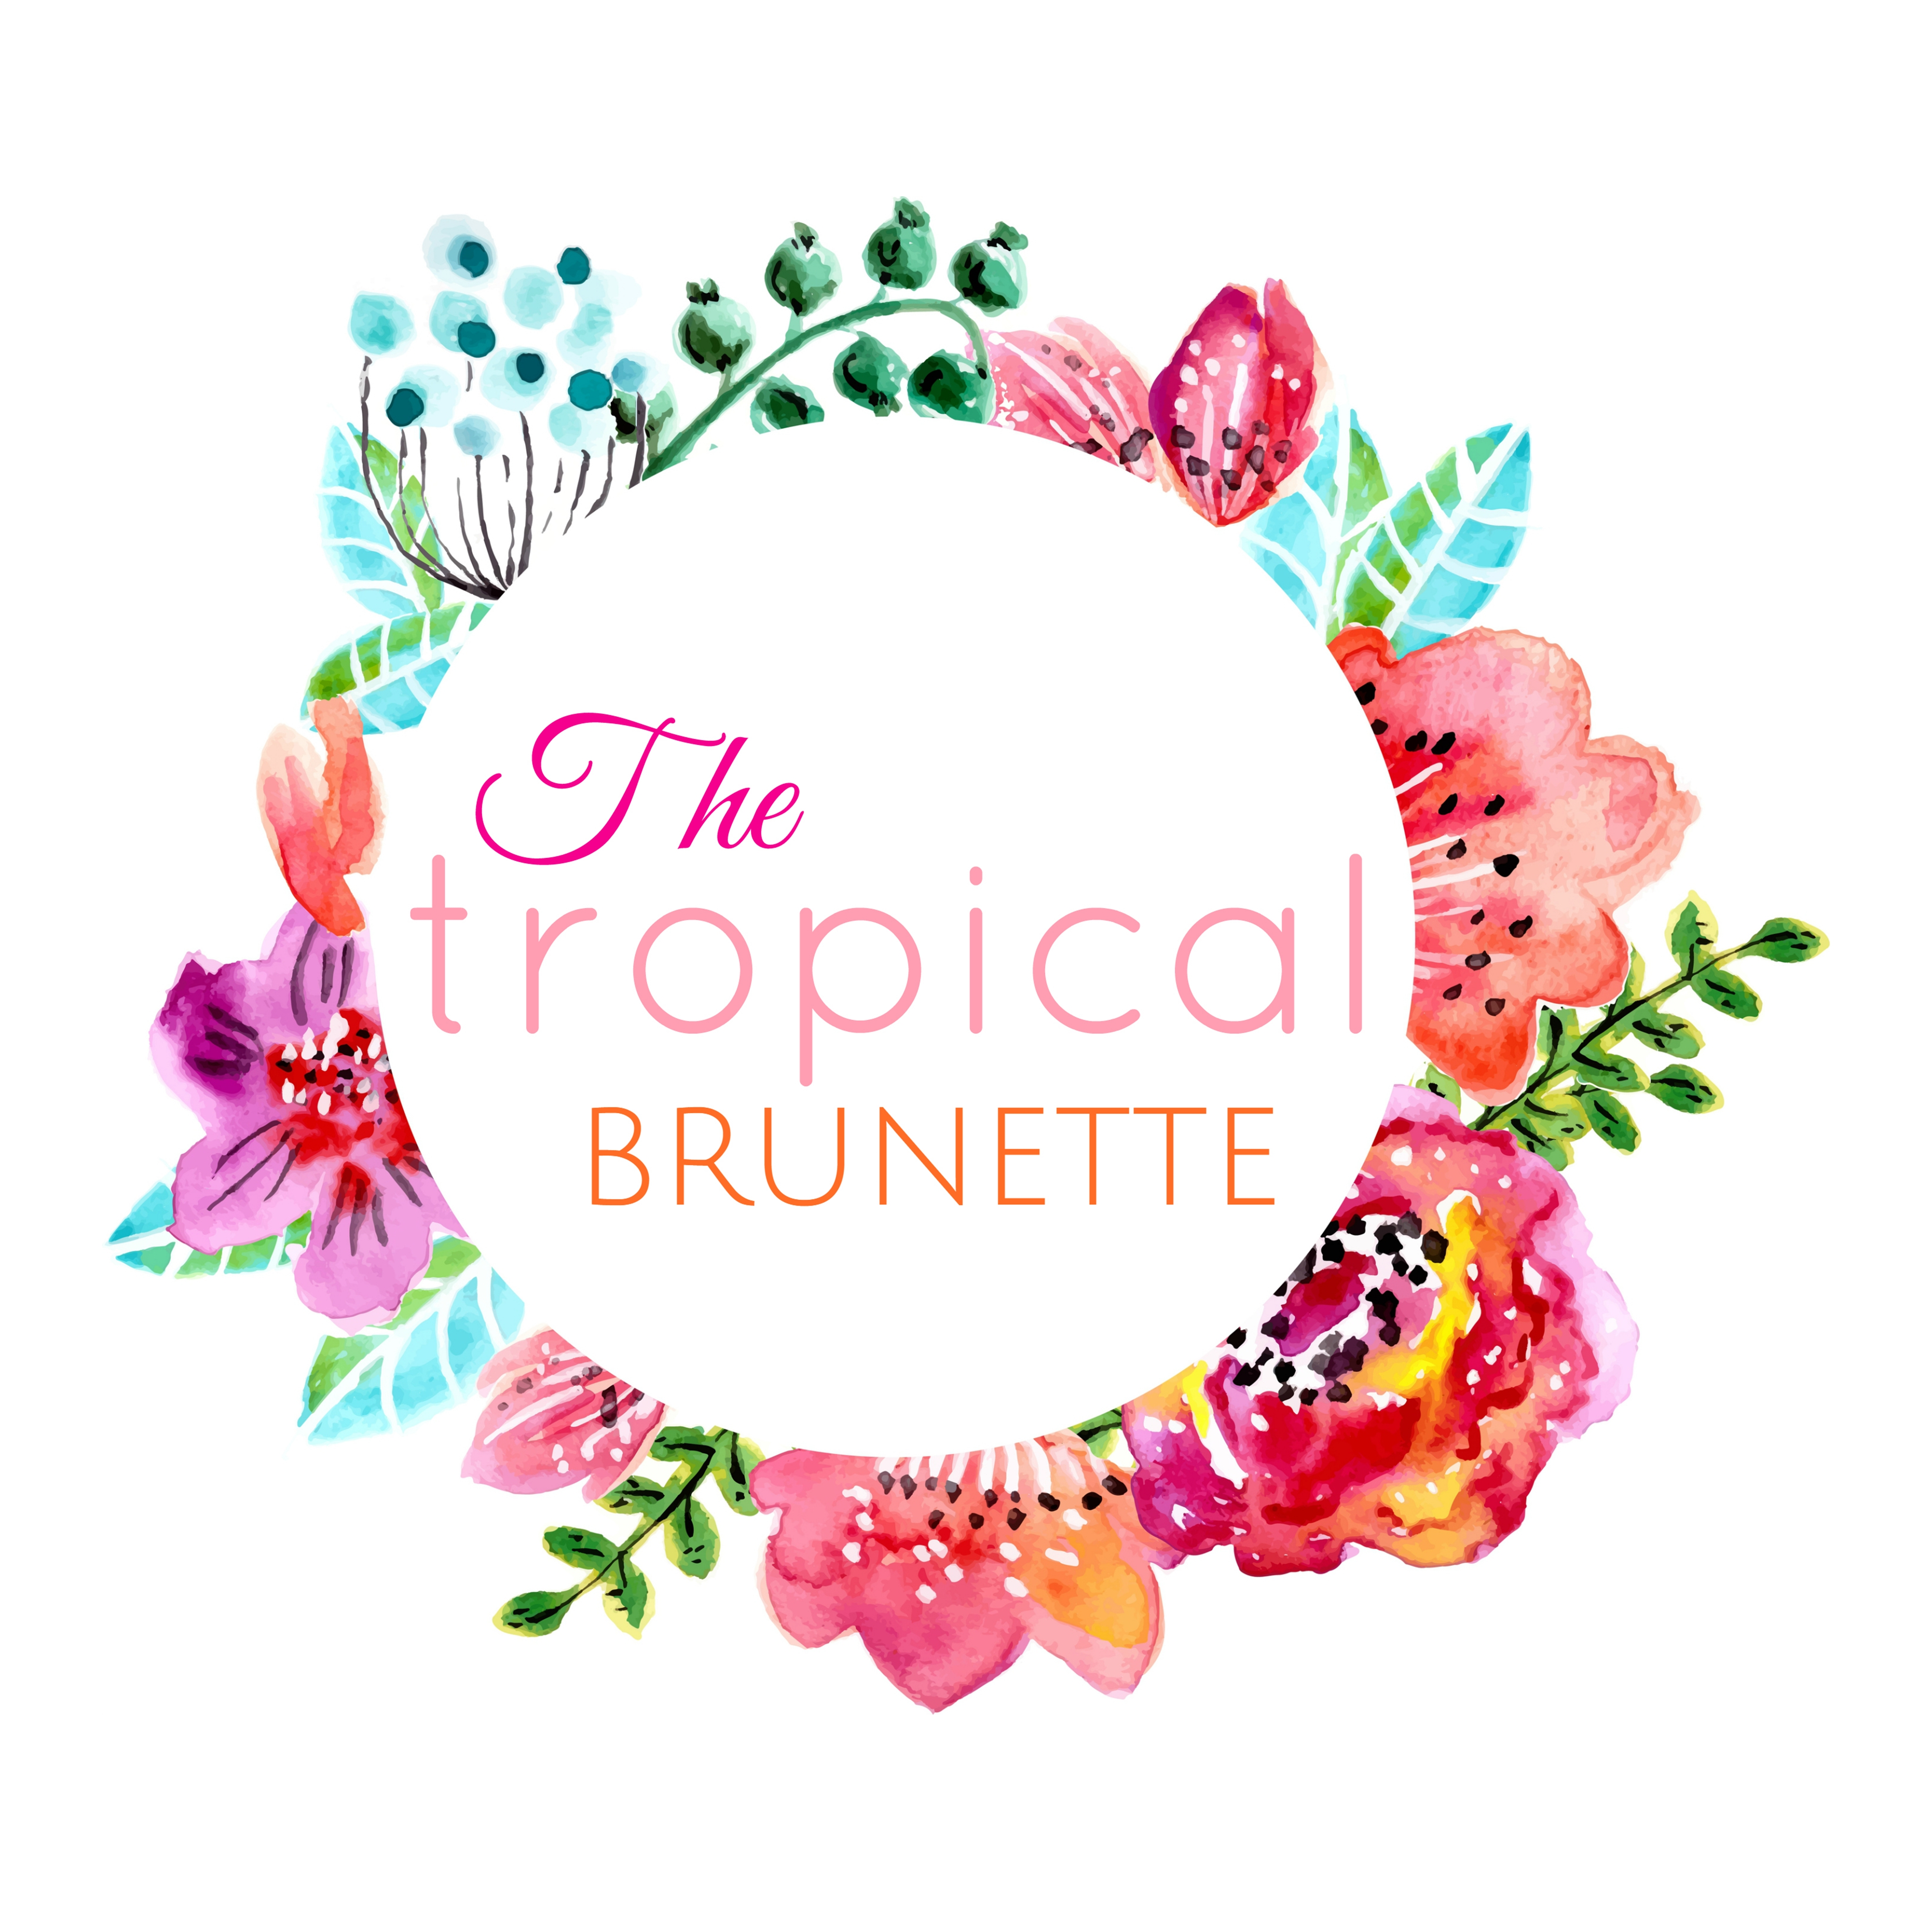 The Tropical Brunette